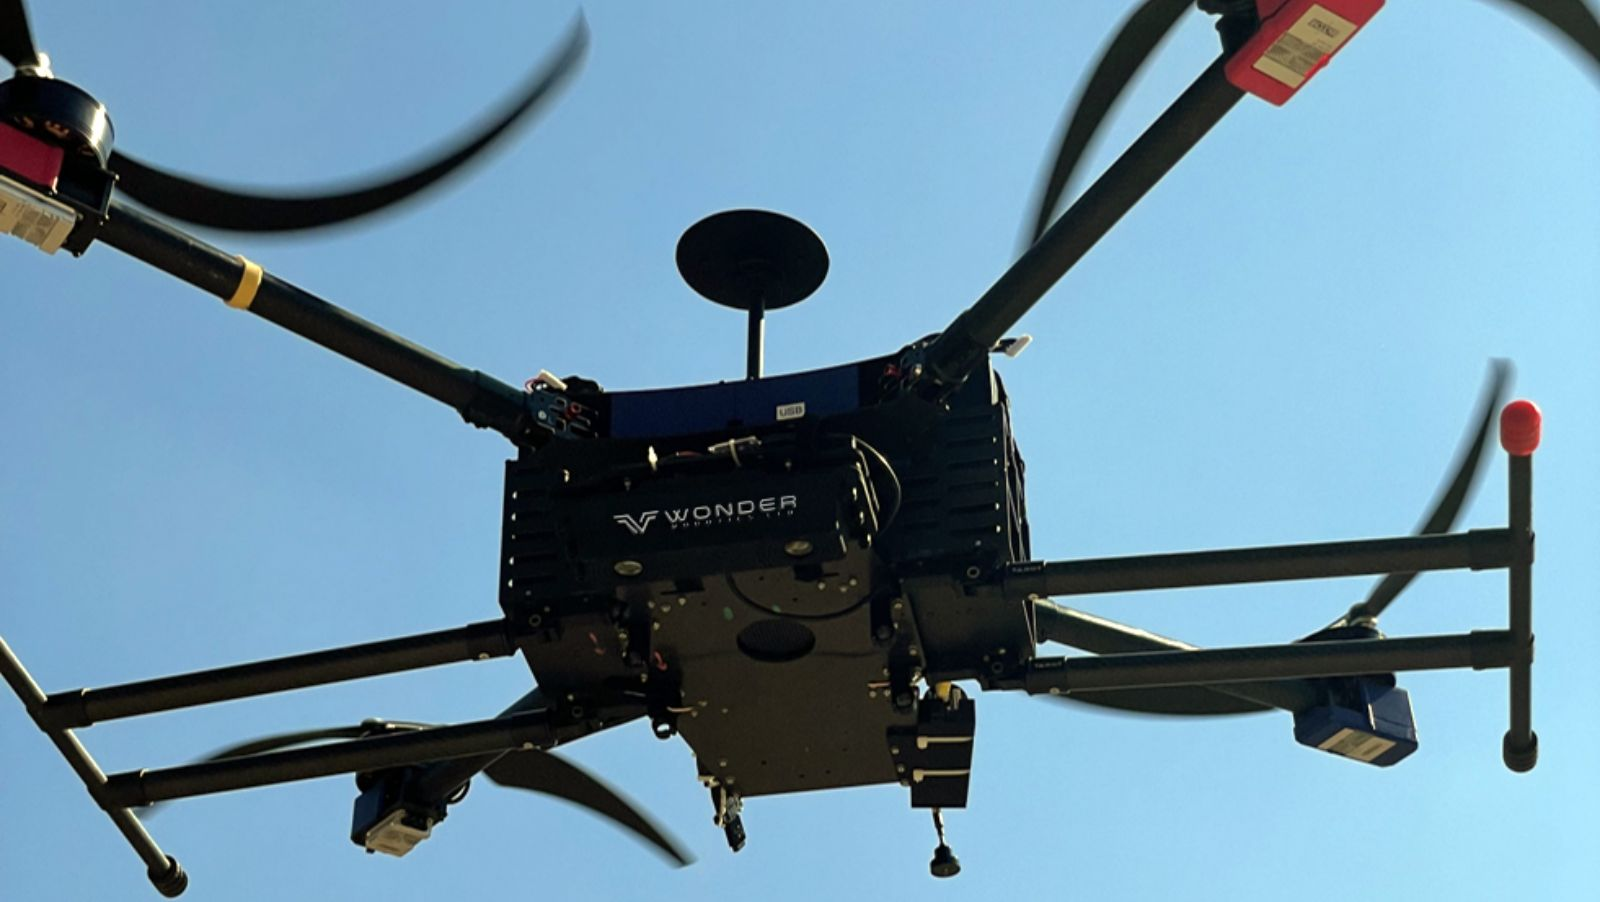 This Startup Will Make Sure Drones Don't Land On Kids